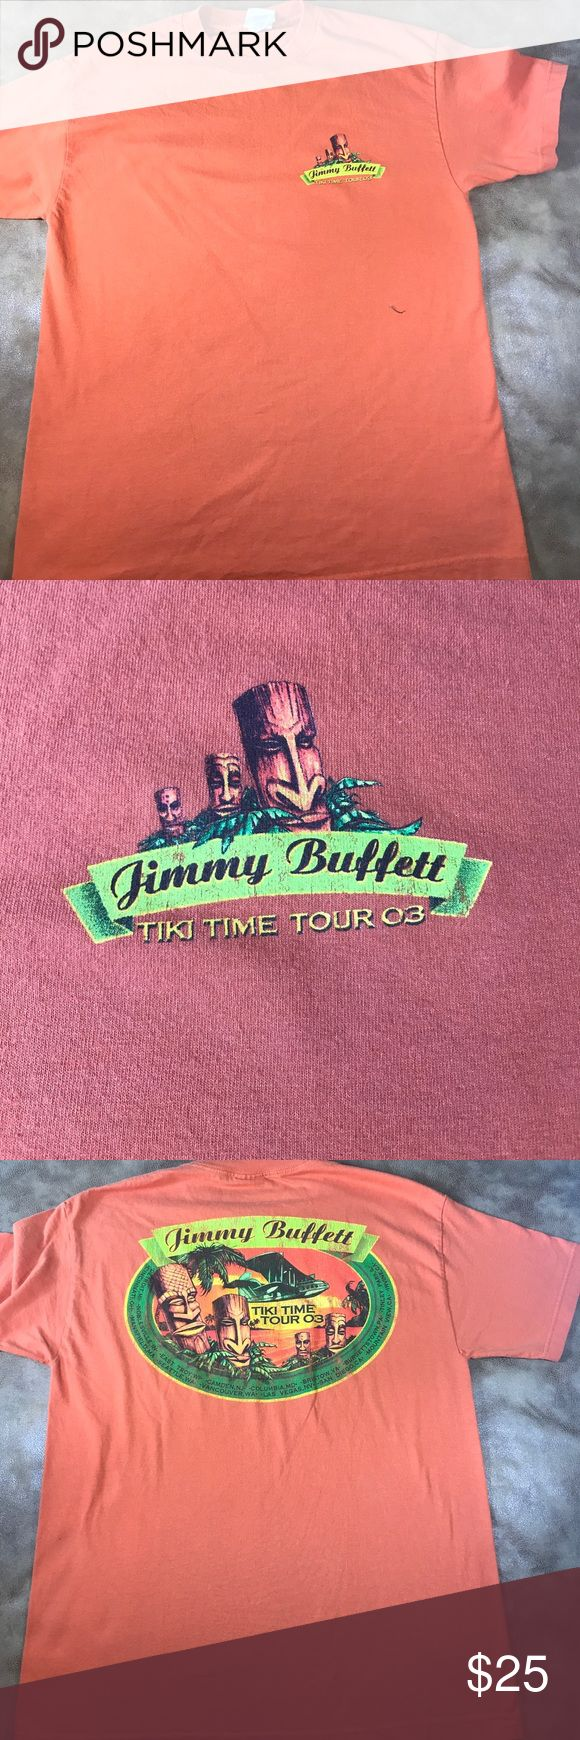 Jimmy Buffett 2003 Tiki Time Tour,  size L Jimmy Buffett tiki time tour 2003 concert T shirt size large.Shirt is in good condition. Thanks for visiting my closet! Shirts Tees - Short Sleeve